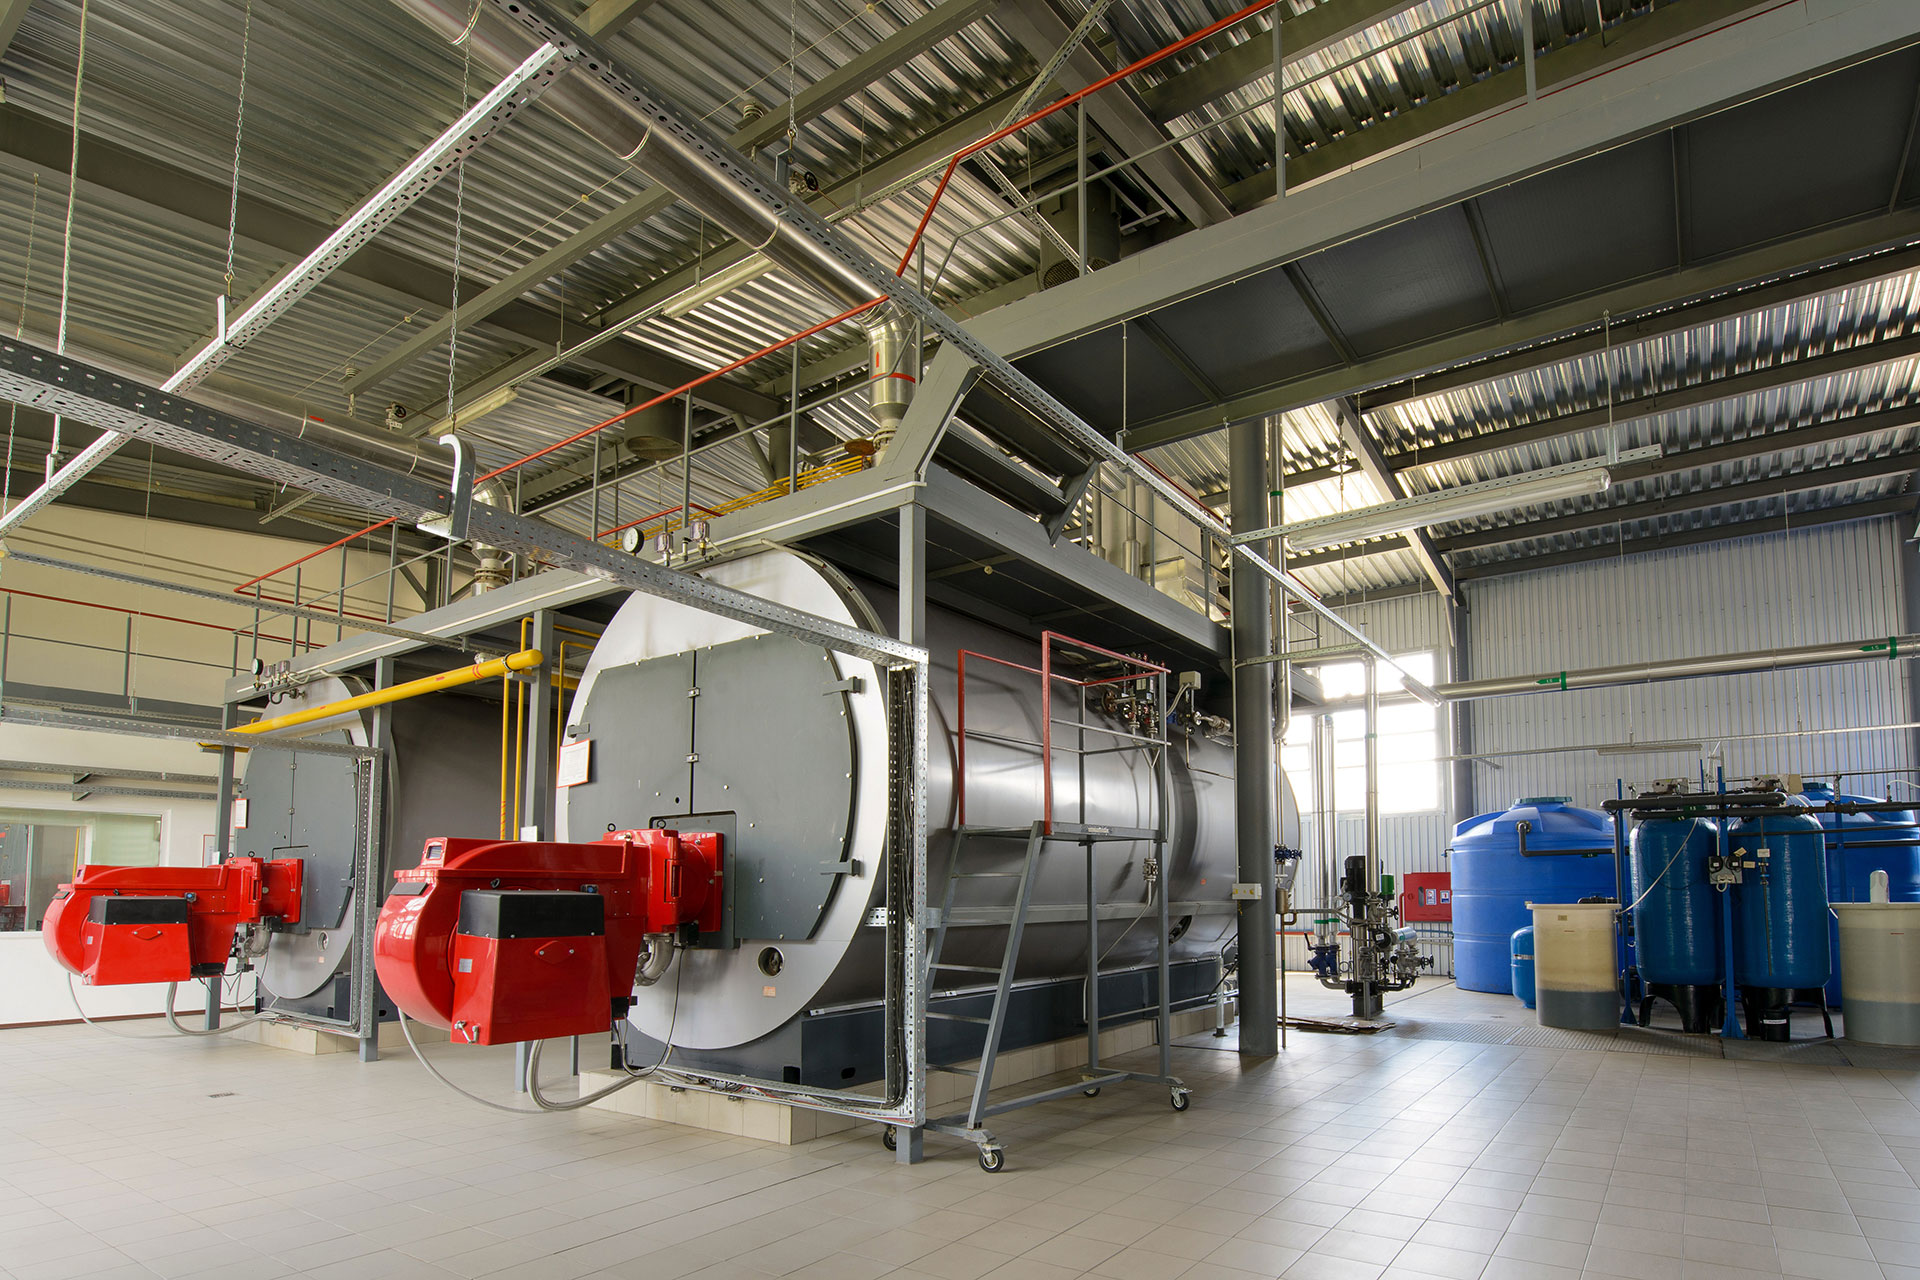 Chromalox Electric Boilers Burner Combustion Systems